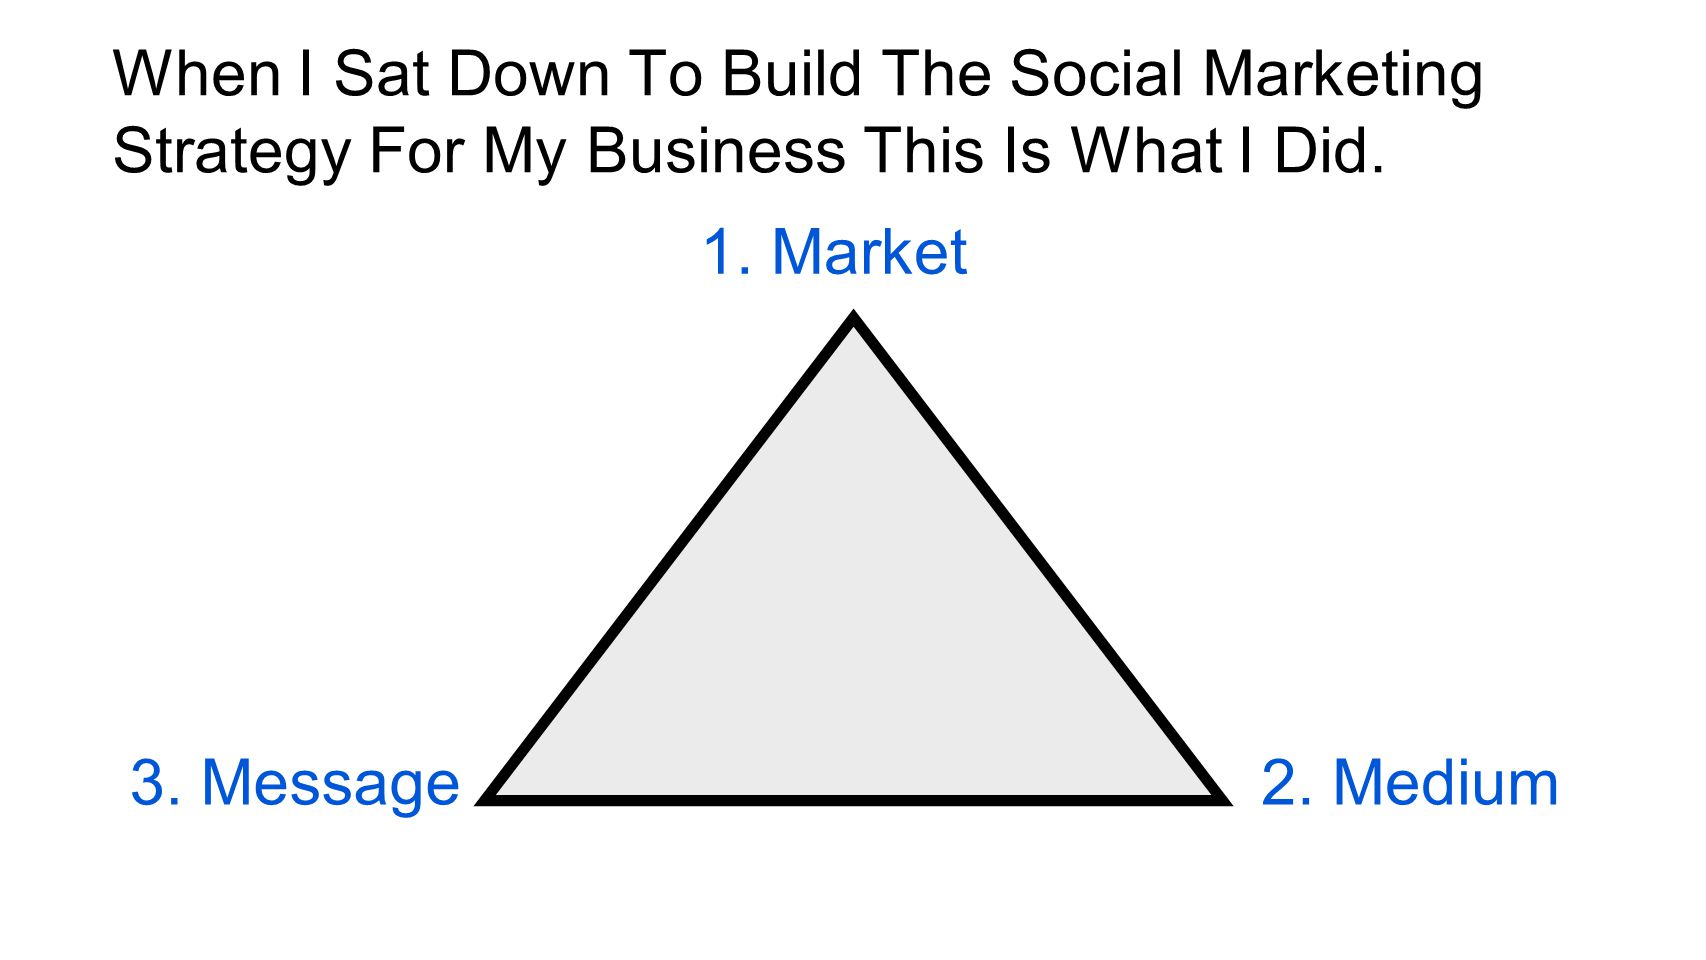 When I Sat Down To Build The Social Marketing Strategy For My Business This Is What I Did.